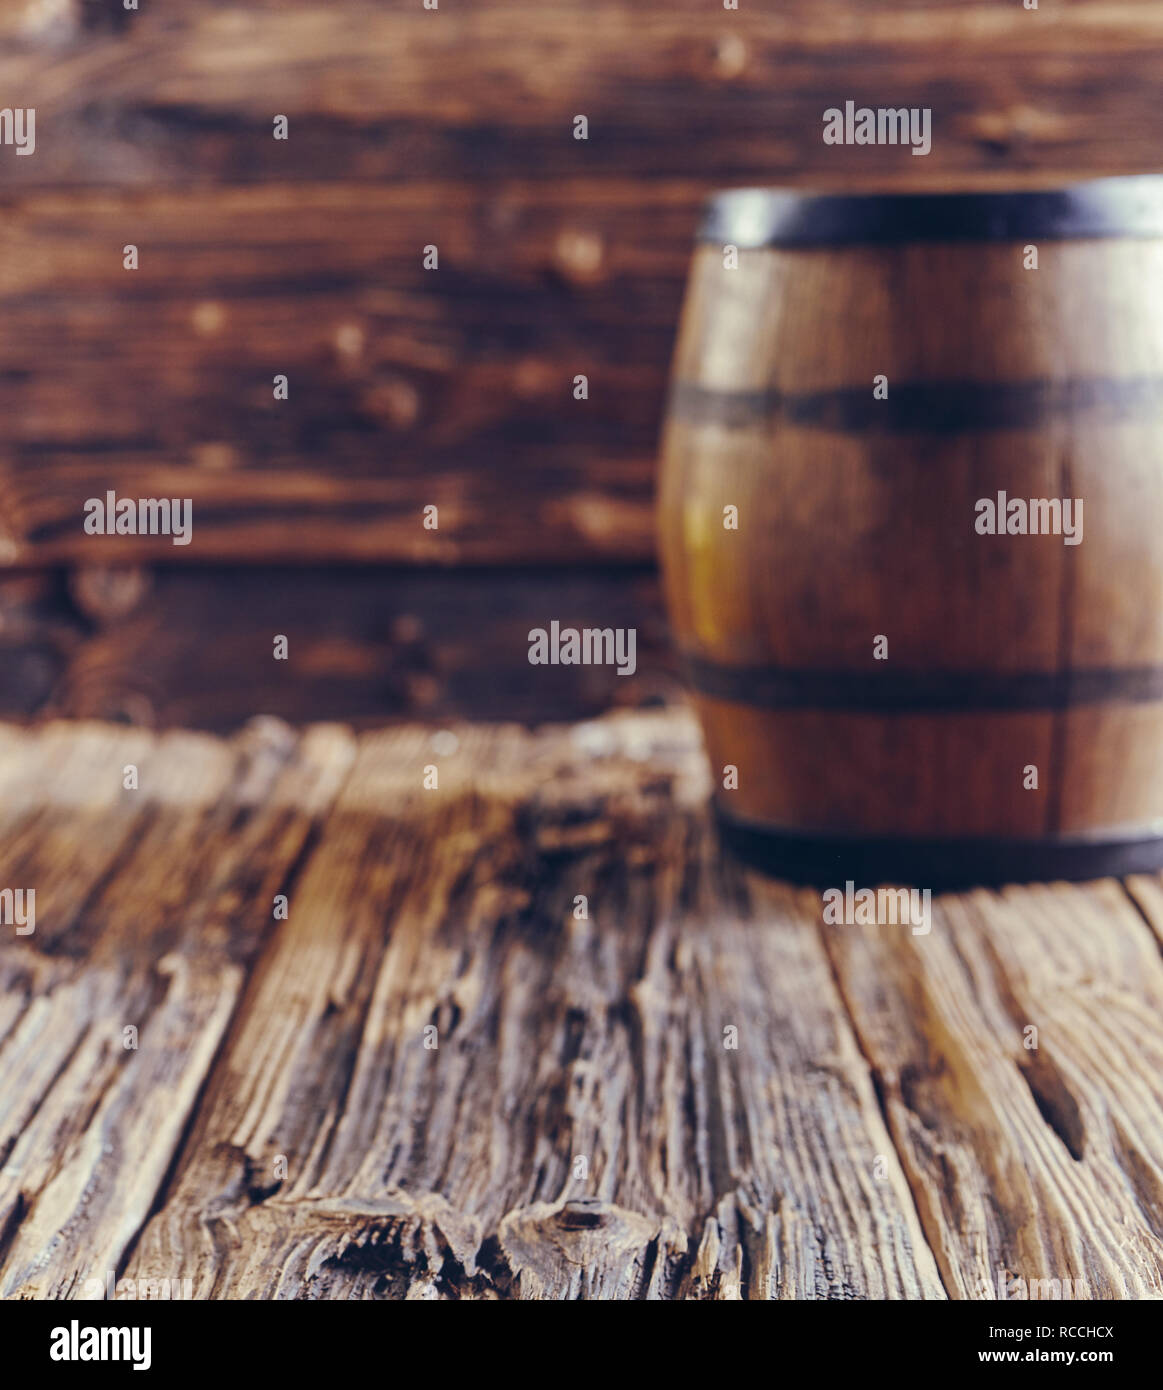 Oak barrel for alcohol aging, standing on old wooden table with harsh woodgrain, blurred in background - Stock Image